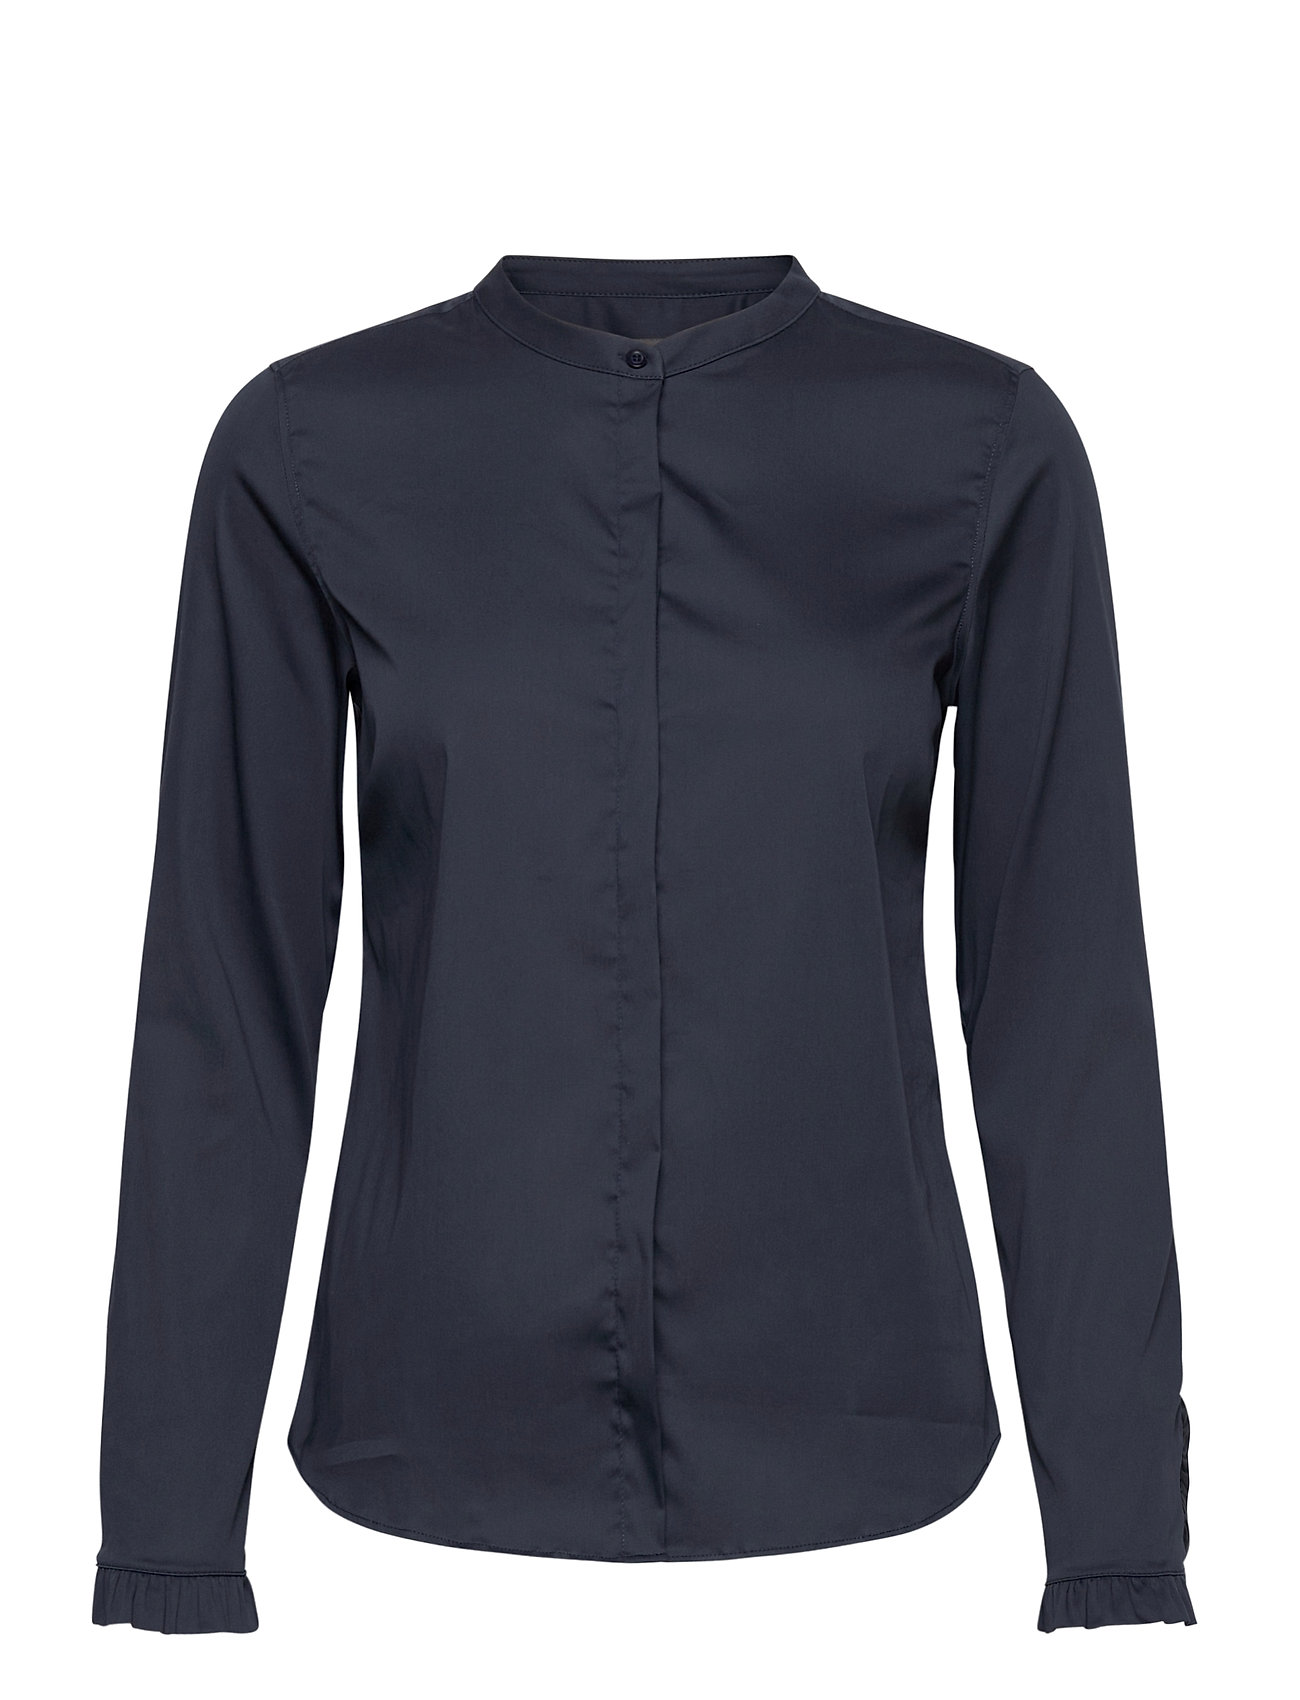 Image of Mattie Sustainable Shirt Langærmet Skjorte Blå MOS MOSH (3453850835)